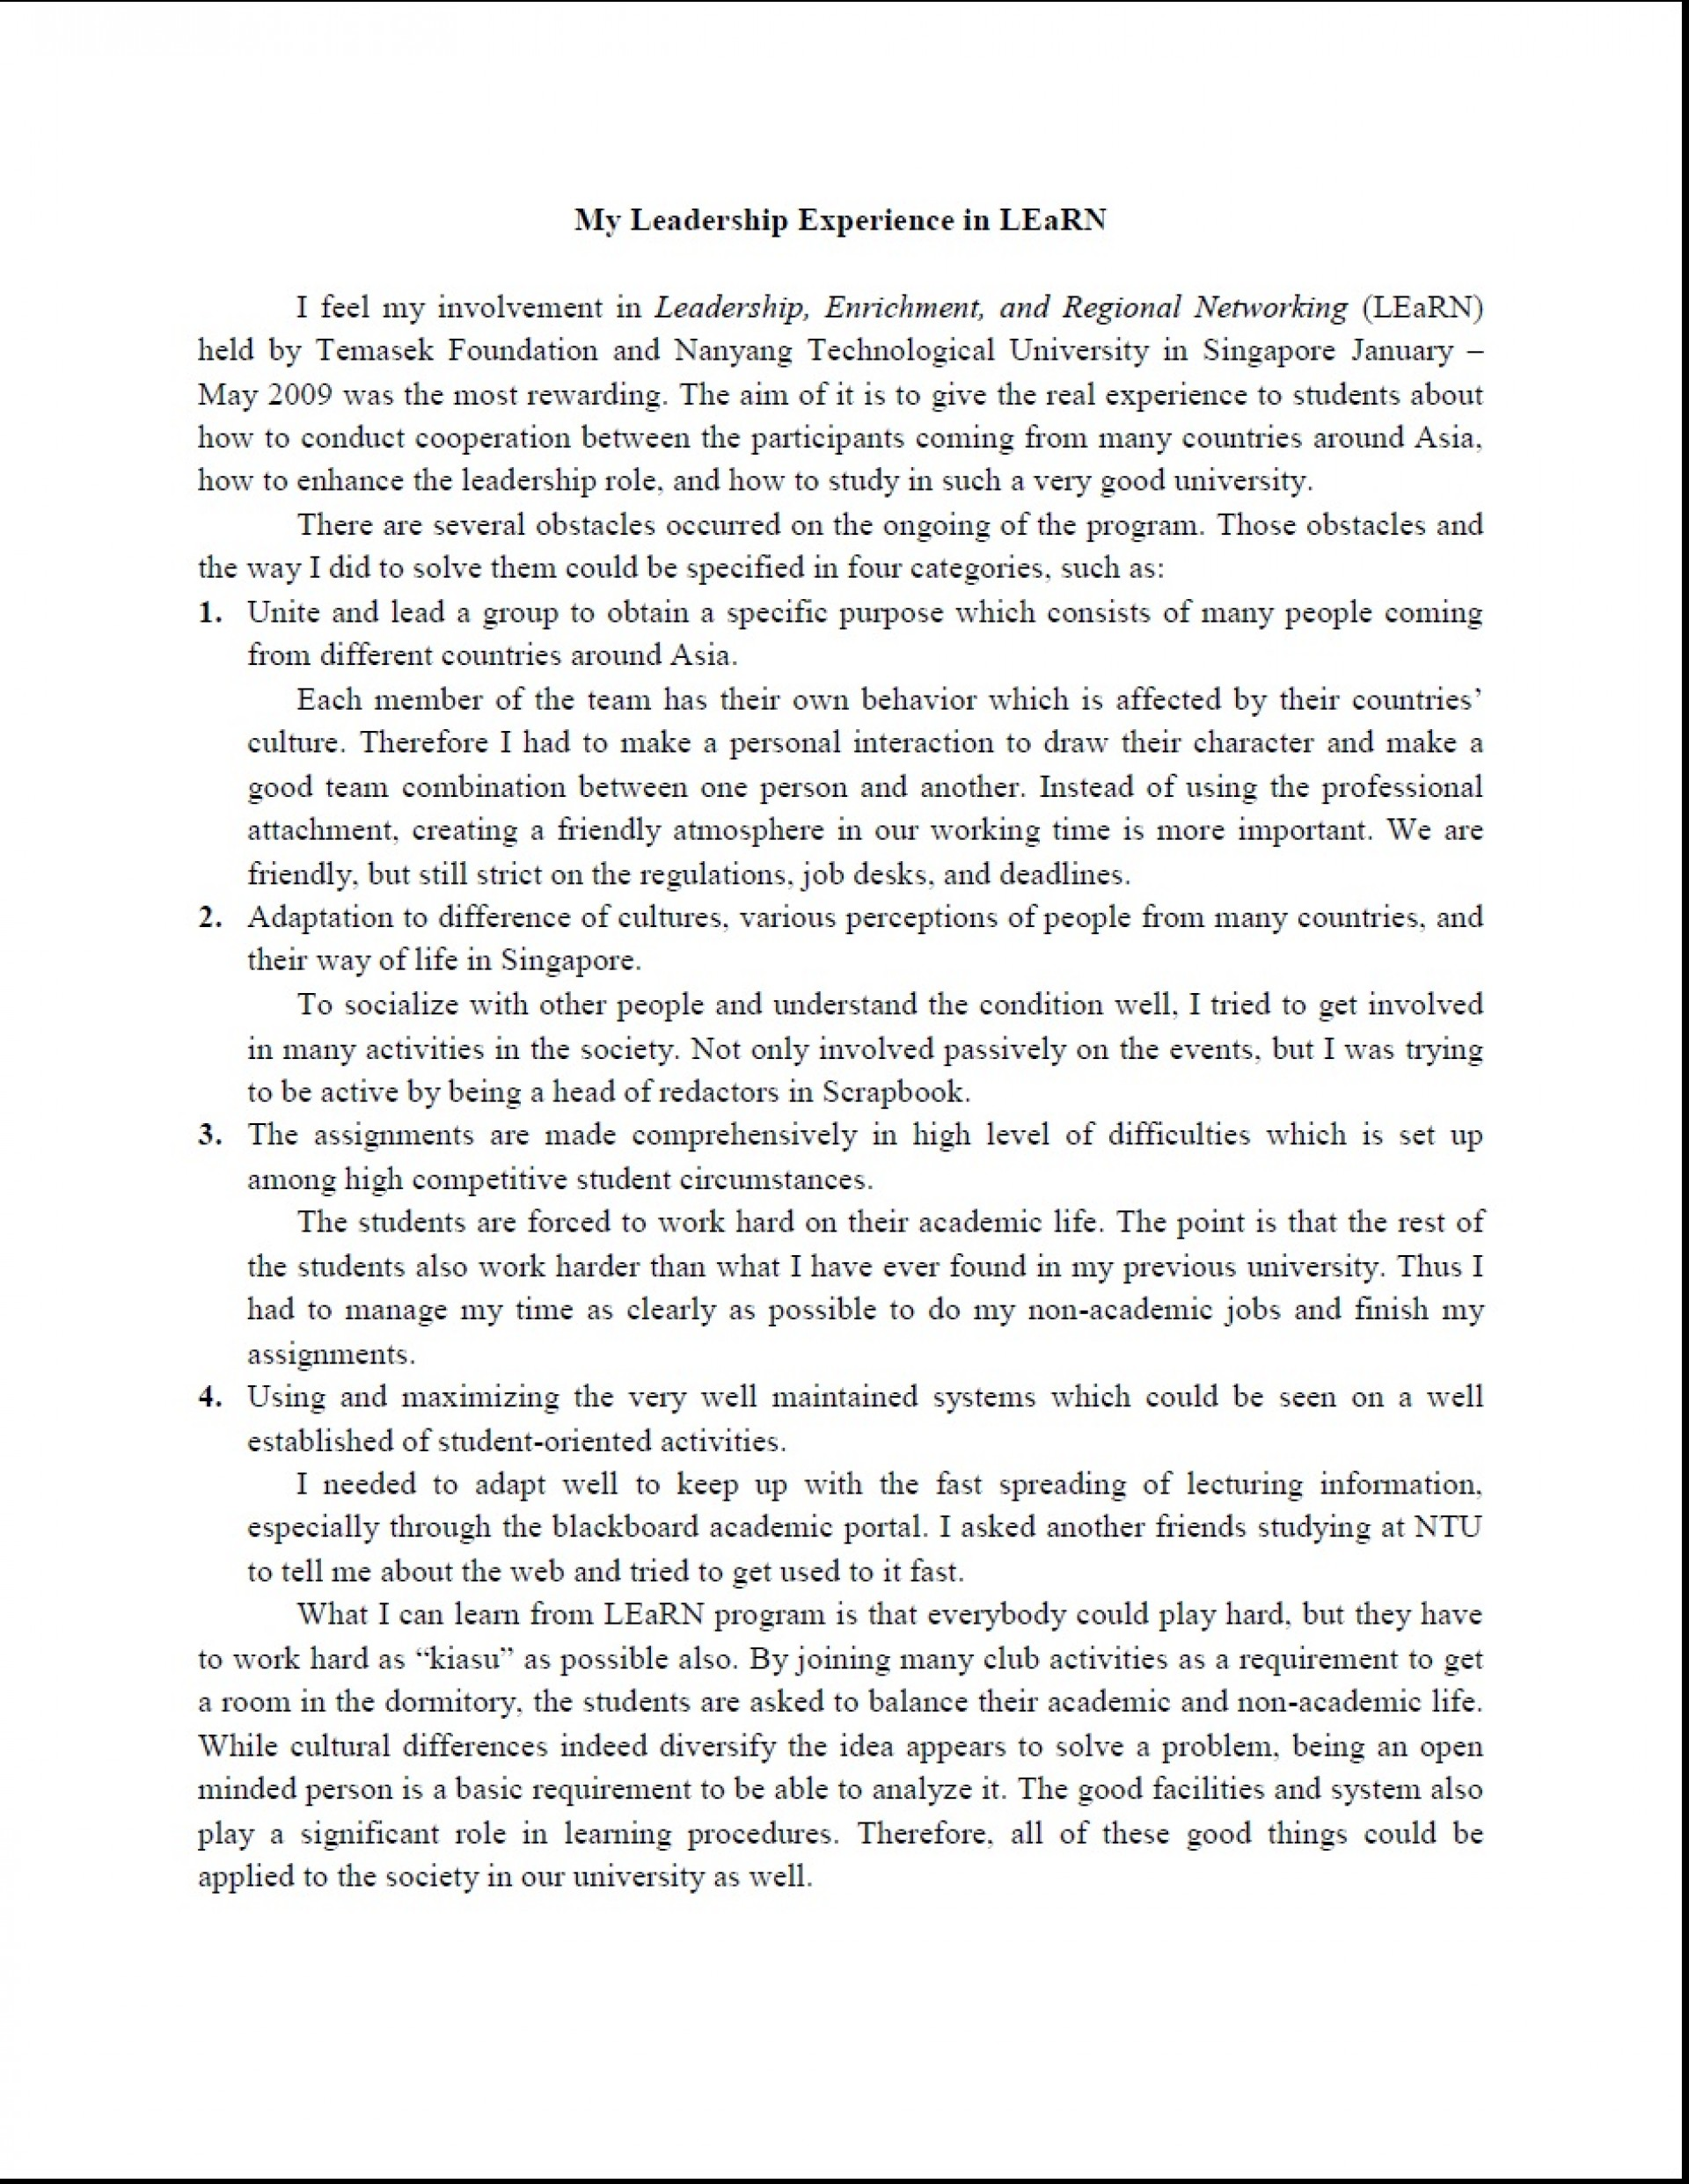 004 Essay Ideas My Leadership Amazing Thesis For Hamlet 7th Graders Narrative Prompts 4th Grade 1920